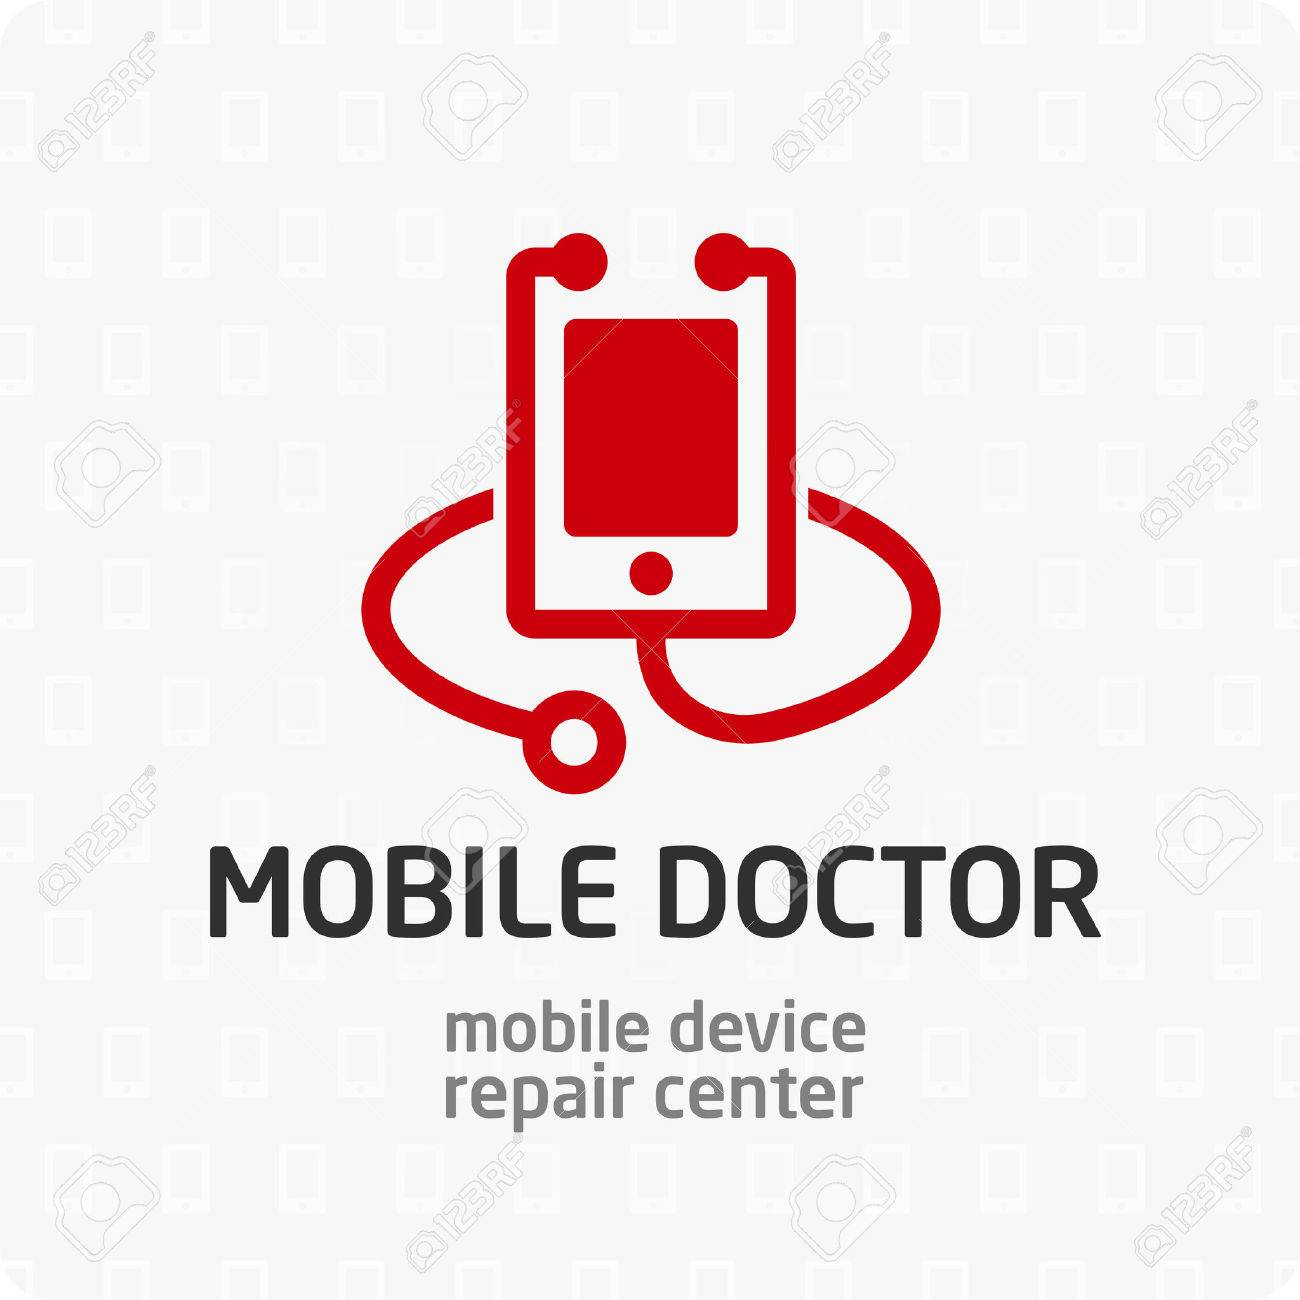 smart phone device repair symbol logo icon sign template for